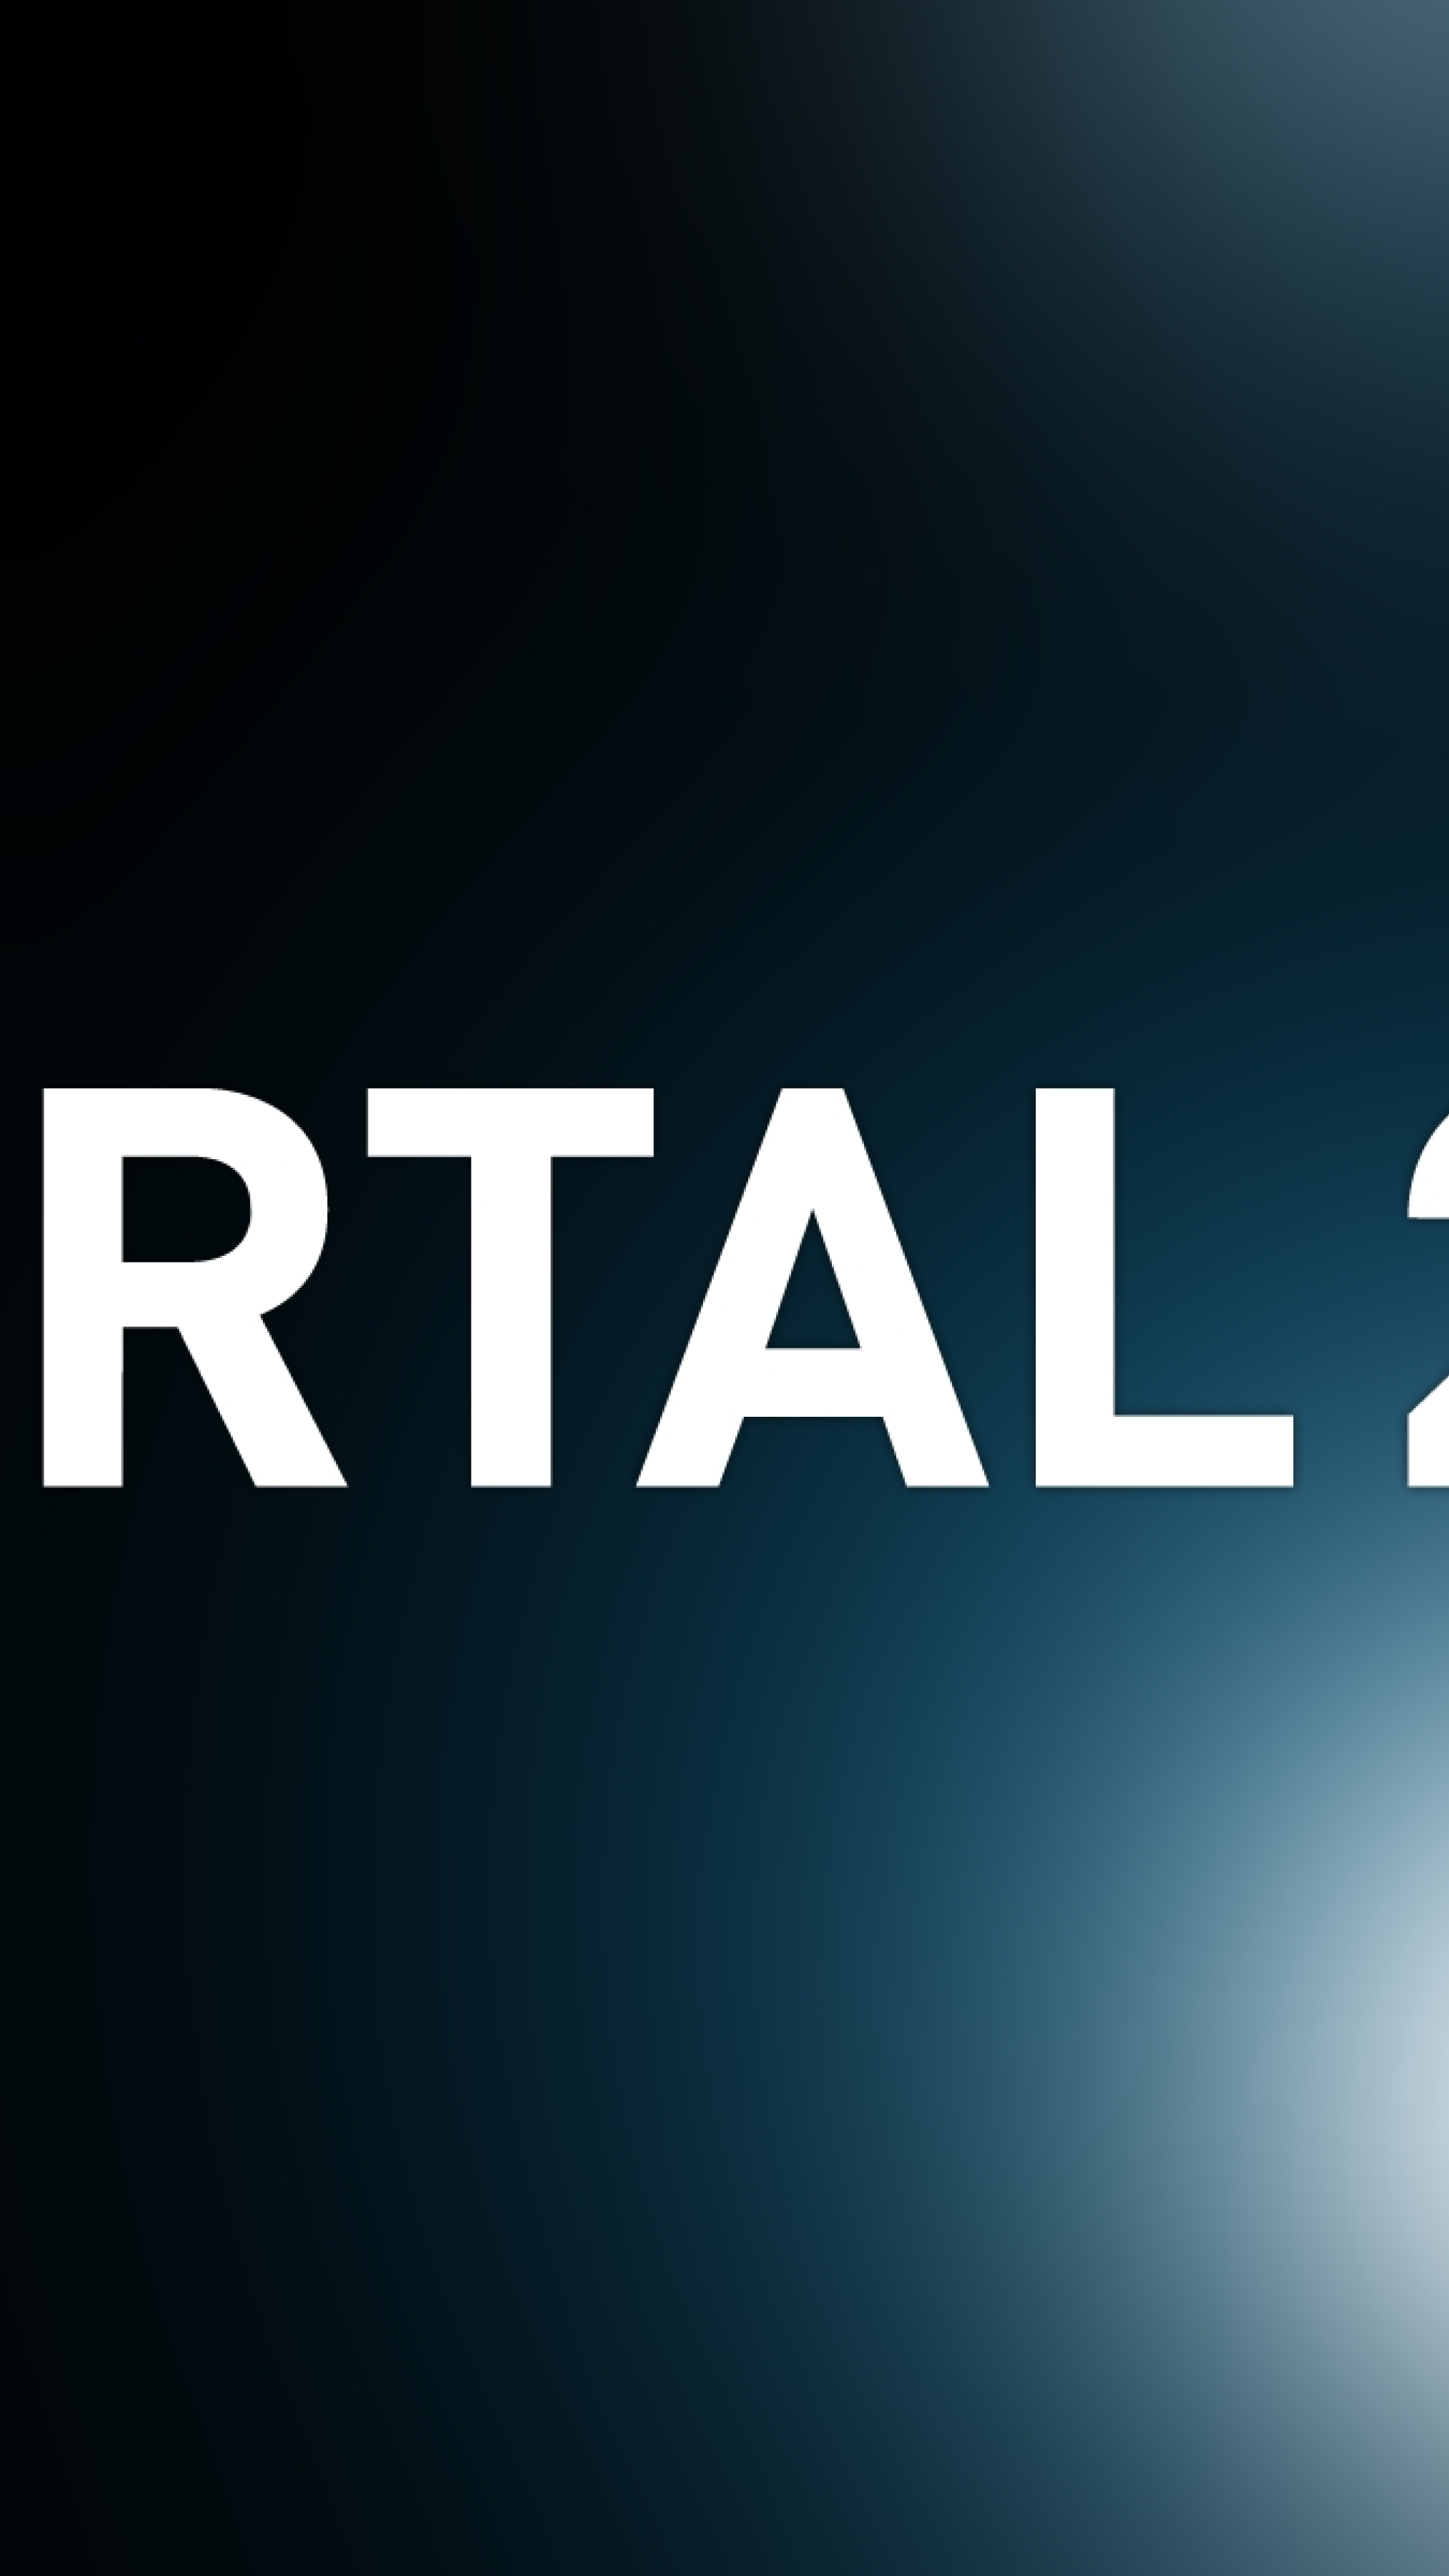 Simple Wallpaper Name Sony - portal-2-name-people_14247_2160x3840  Graphic_219419.jpg